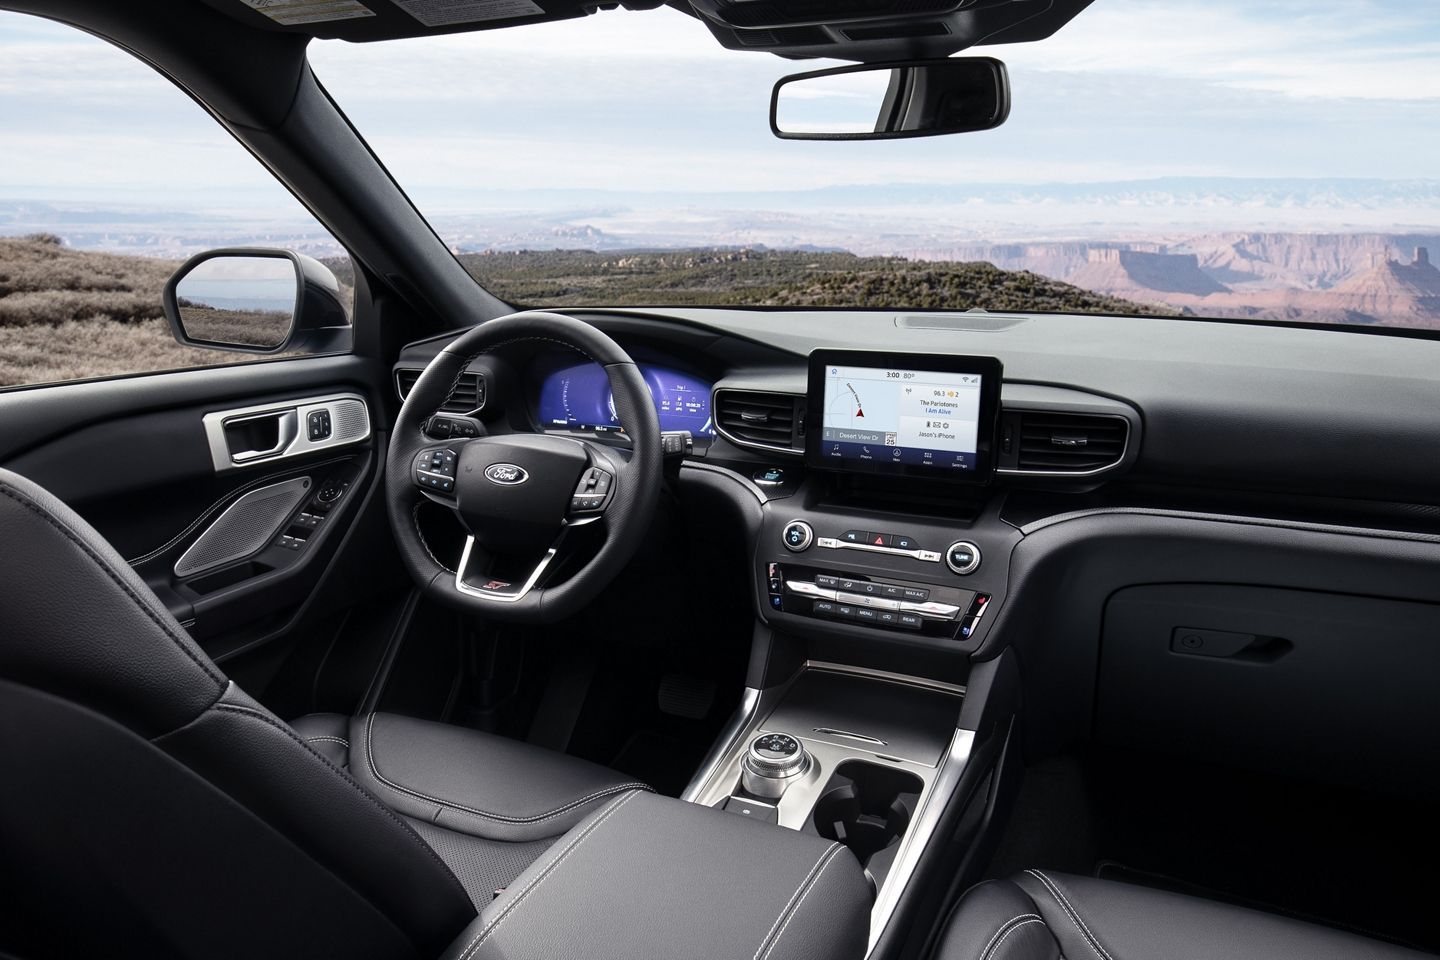 Introducing The All New 2020 Ford Explorer Redesigned From Top To Bottom Check Out The Spacious 7 Pa In 2020 2020 Ford Explorer Ford Explorer Interior Ford Explorer